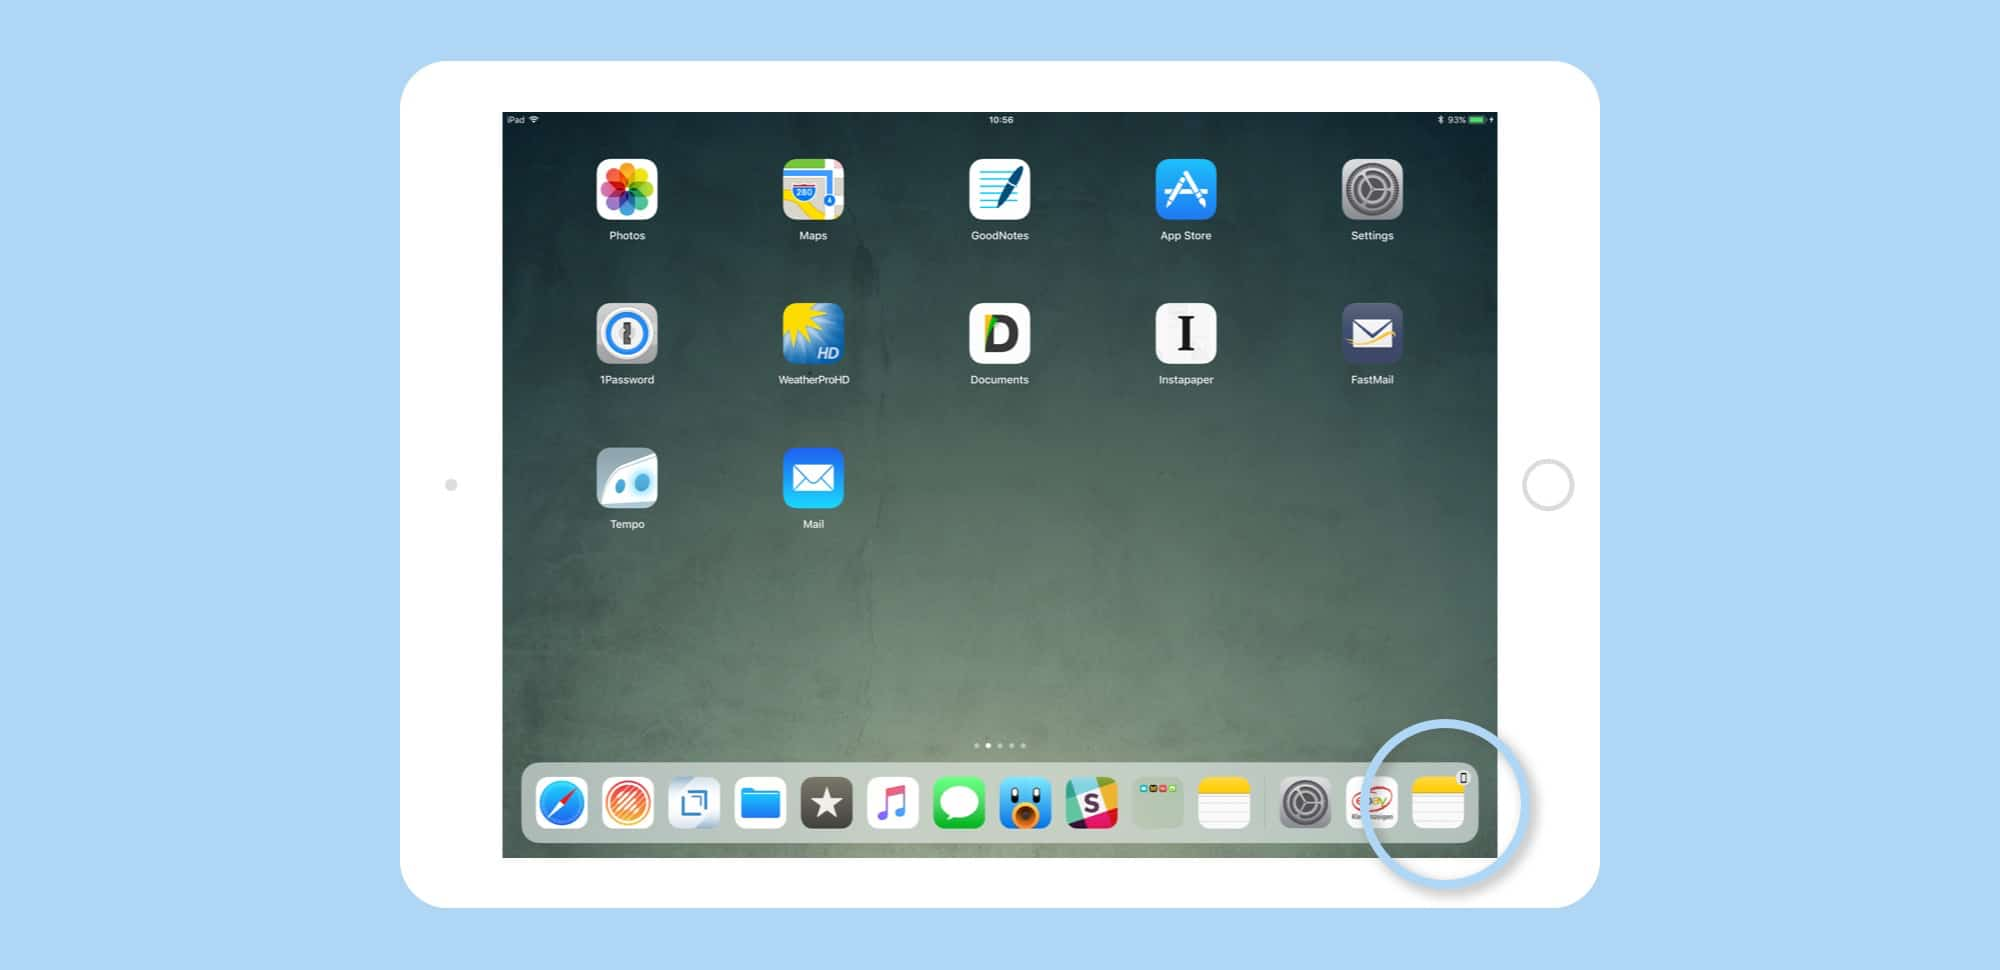 iOS 11 Dock makes Handoff worth using again | Cult of Mac